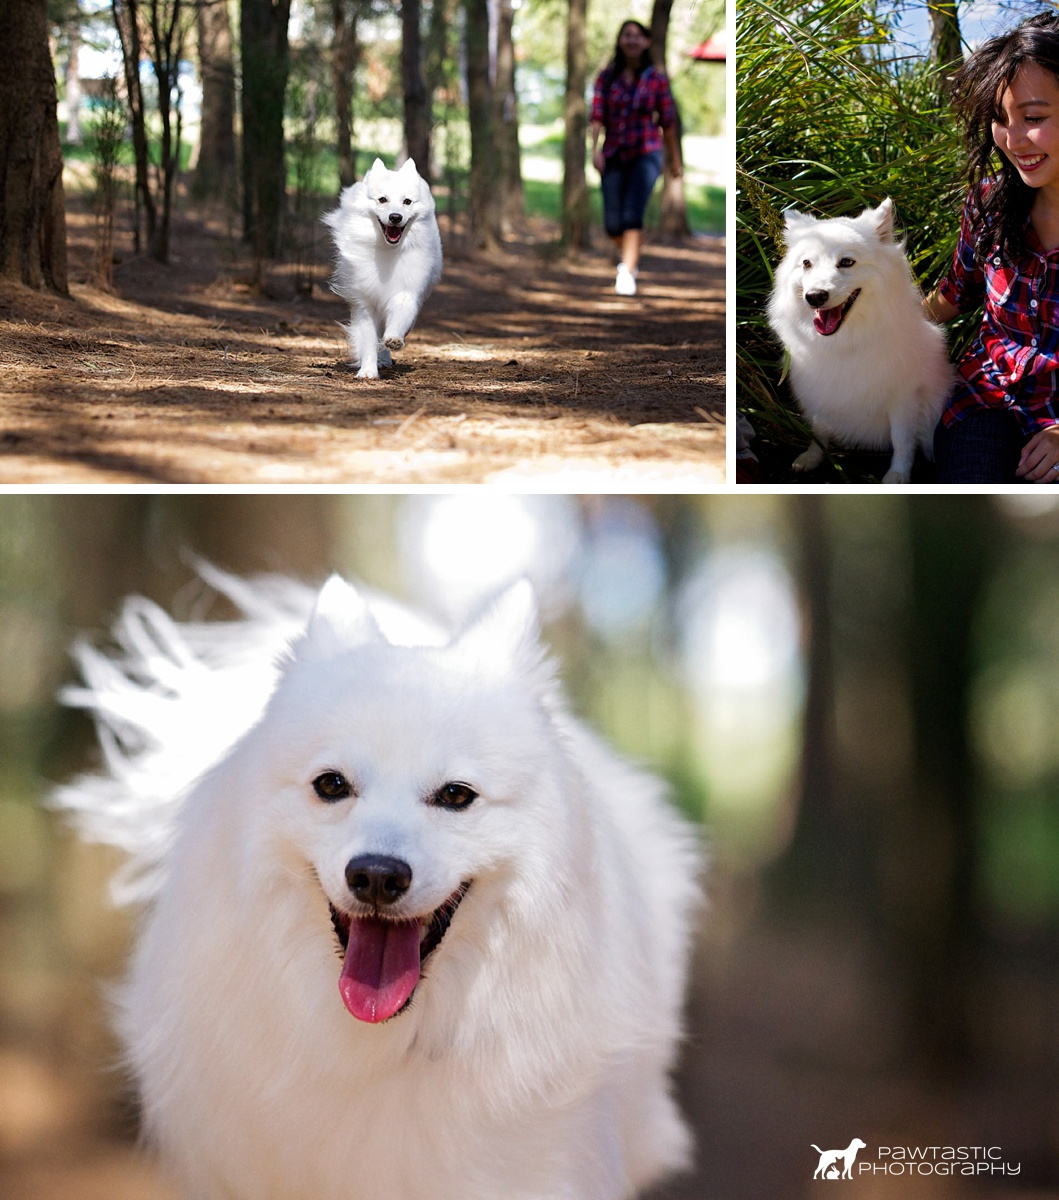 Japanese spitz dog running and smiling at the camera, along with her owner as they take part in the Dog Days of Summer professional pet photography session with Pawtastic Photography